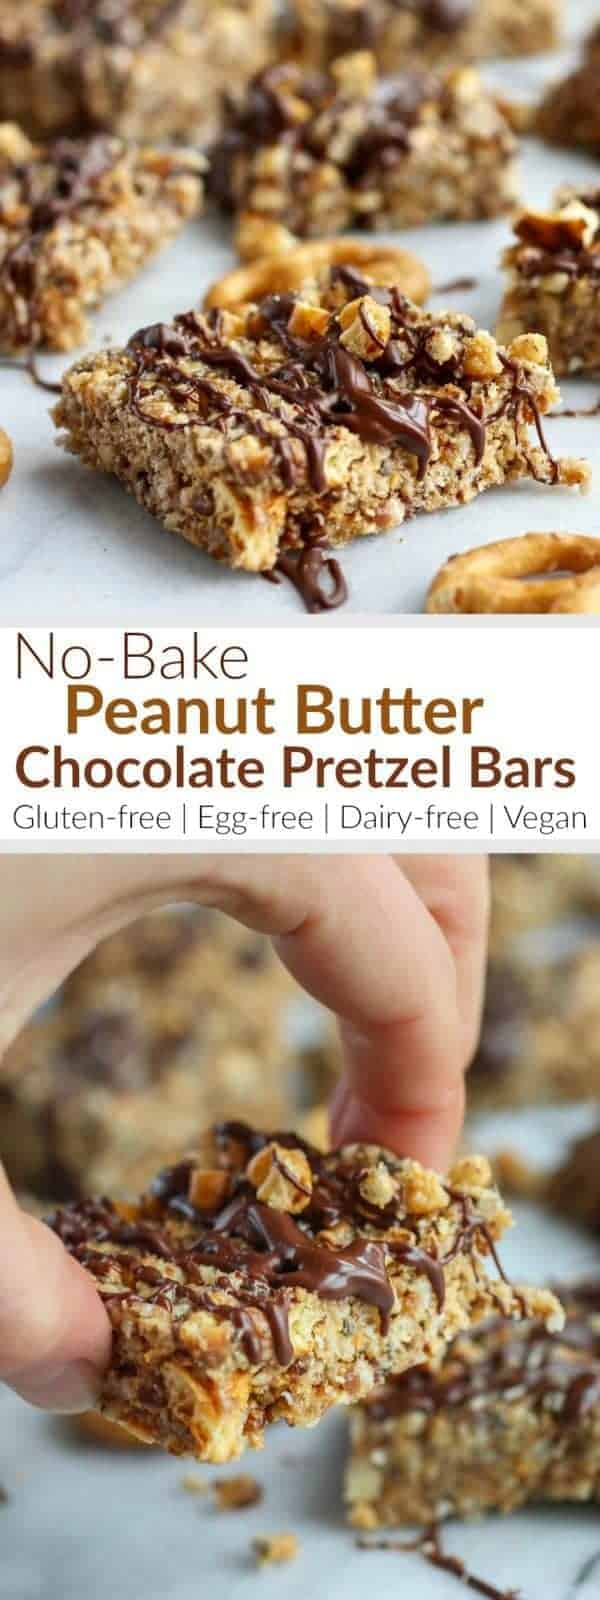 No-Bake Peanut Butter Chocolate Pretzel Bars make the perfect sweet-and-salty treat. They're gluten-free, egg-free, dairy-free & vegan-friendly and only 5 grams of sugar per bar!   therealfoodrds.com